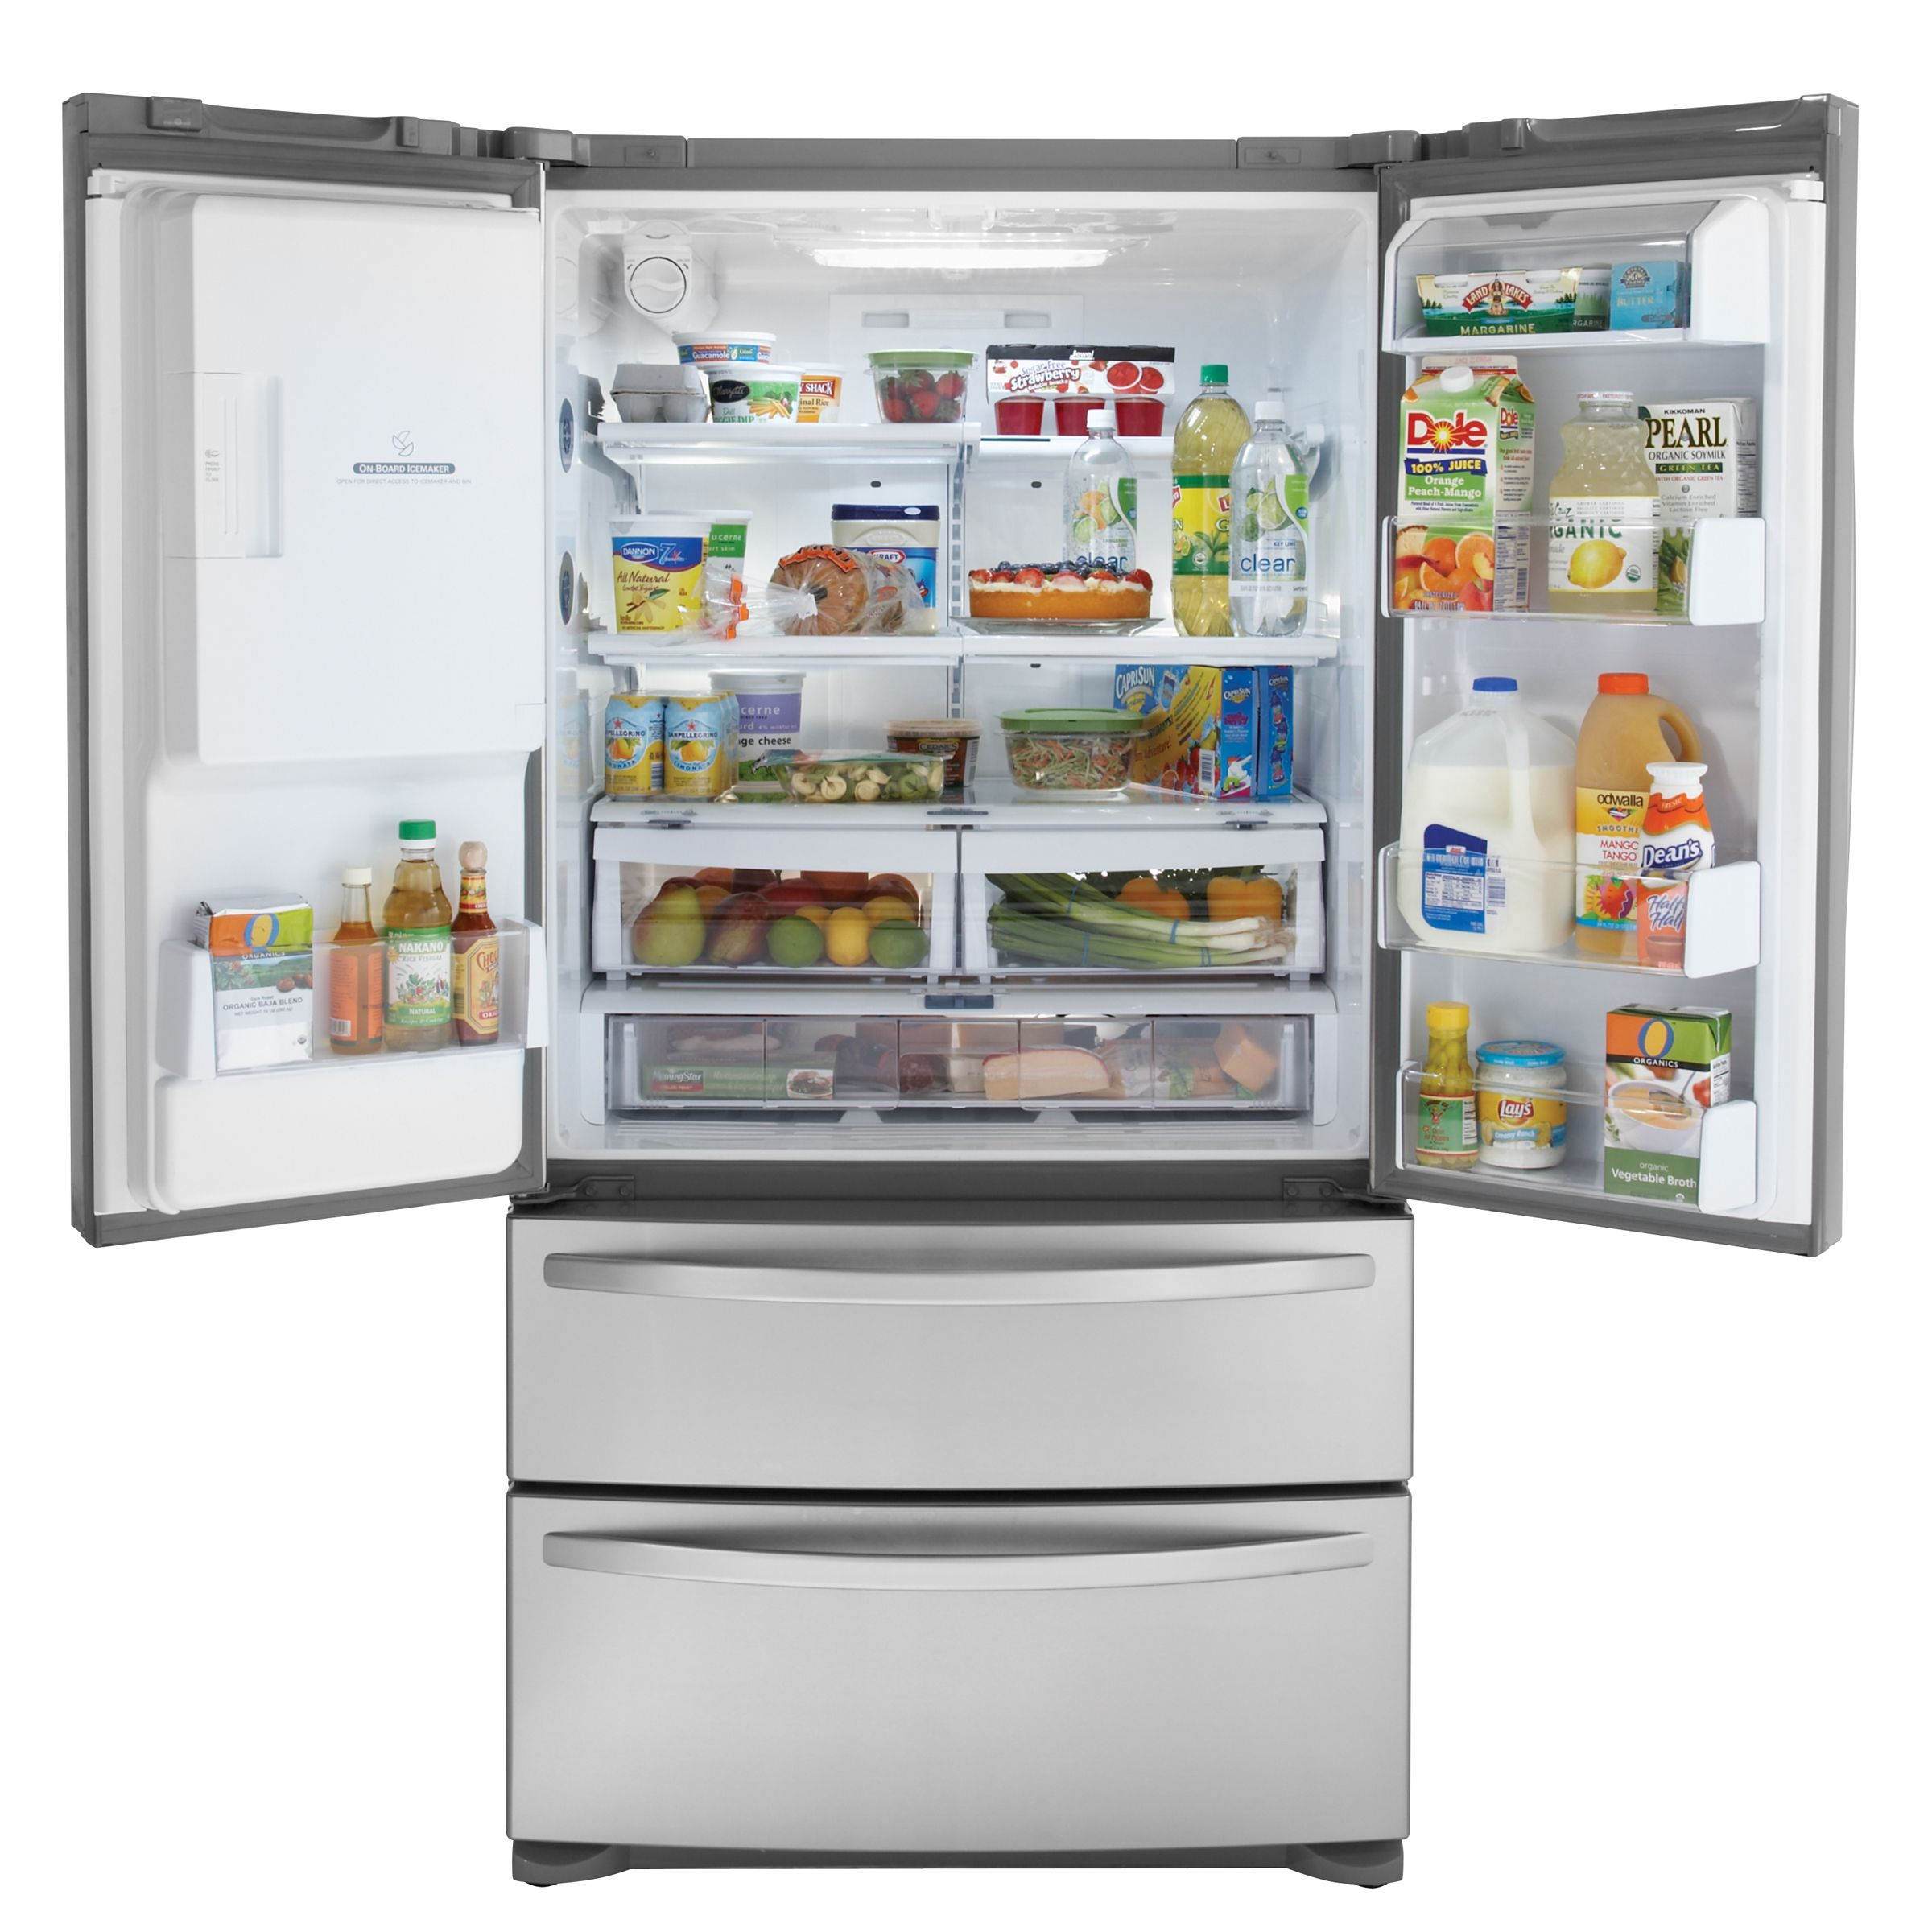 Kenmore Elite 24.7 cu. ft. French-Door Bottom-Freezer Refrigerator